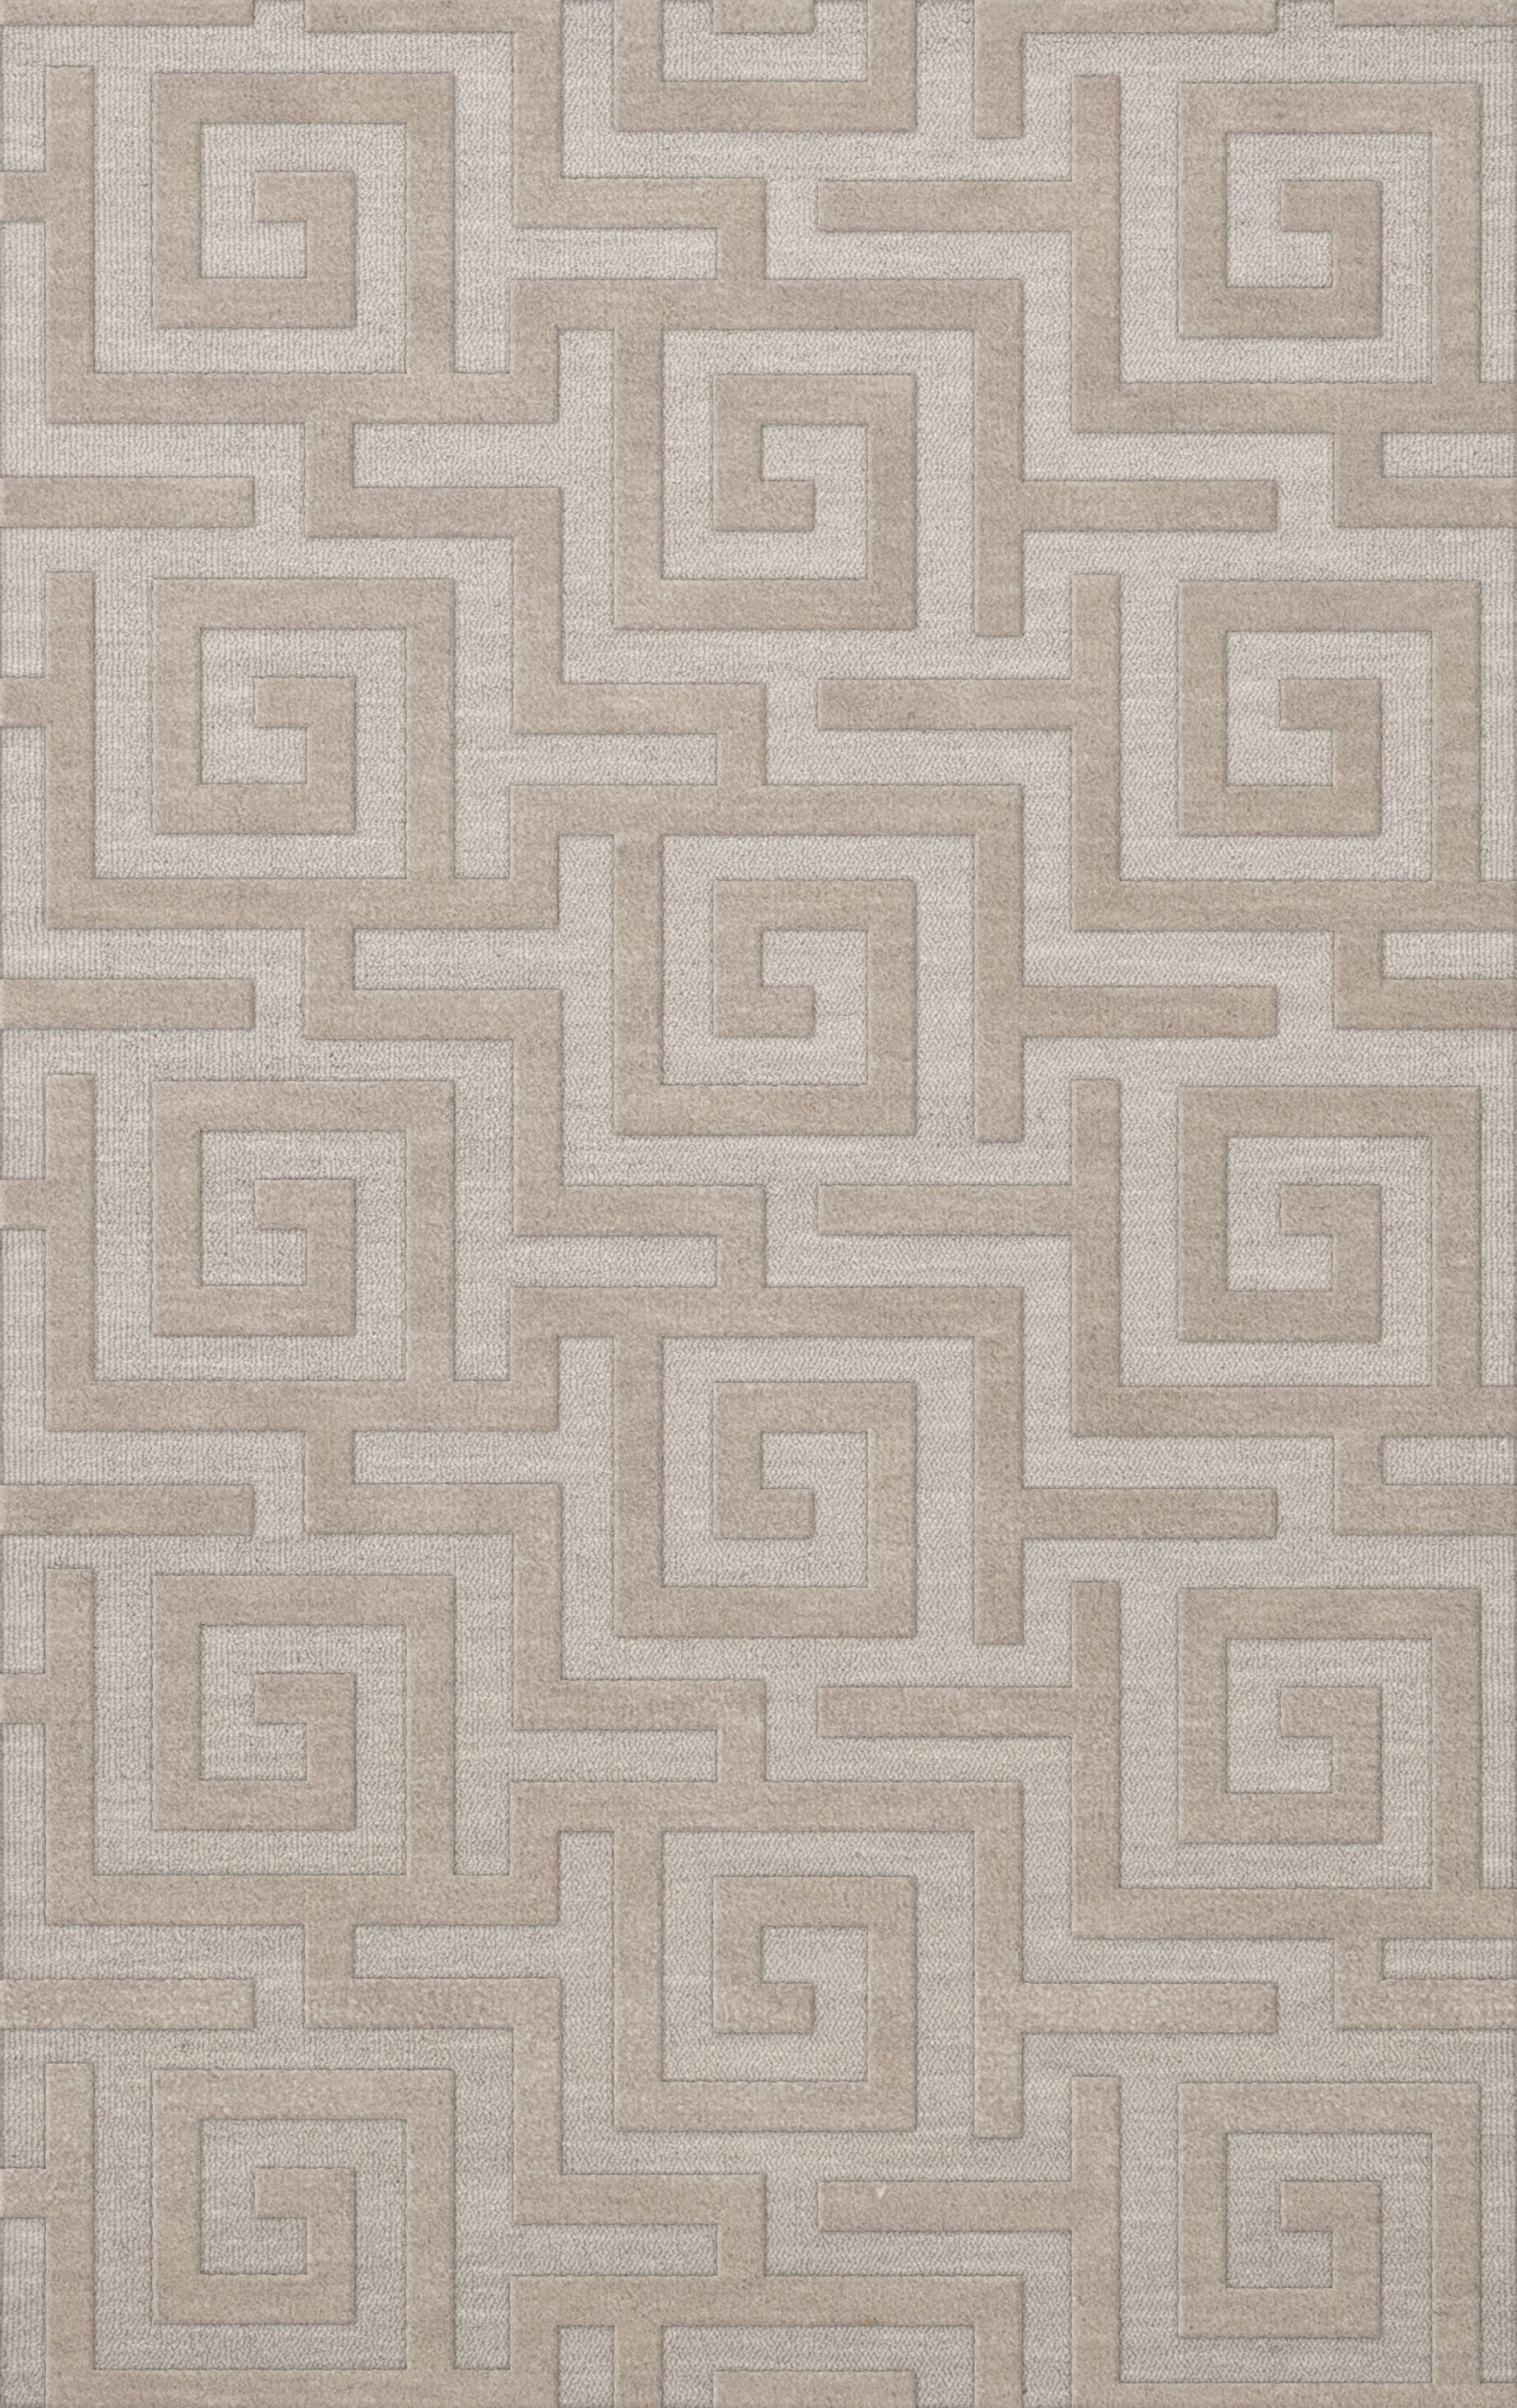 Dover Tufted Wool Putty Area Rug Rug Size: Rectangle 12' x 18'